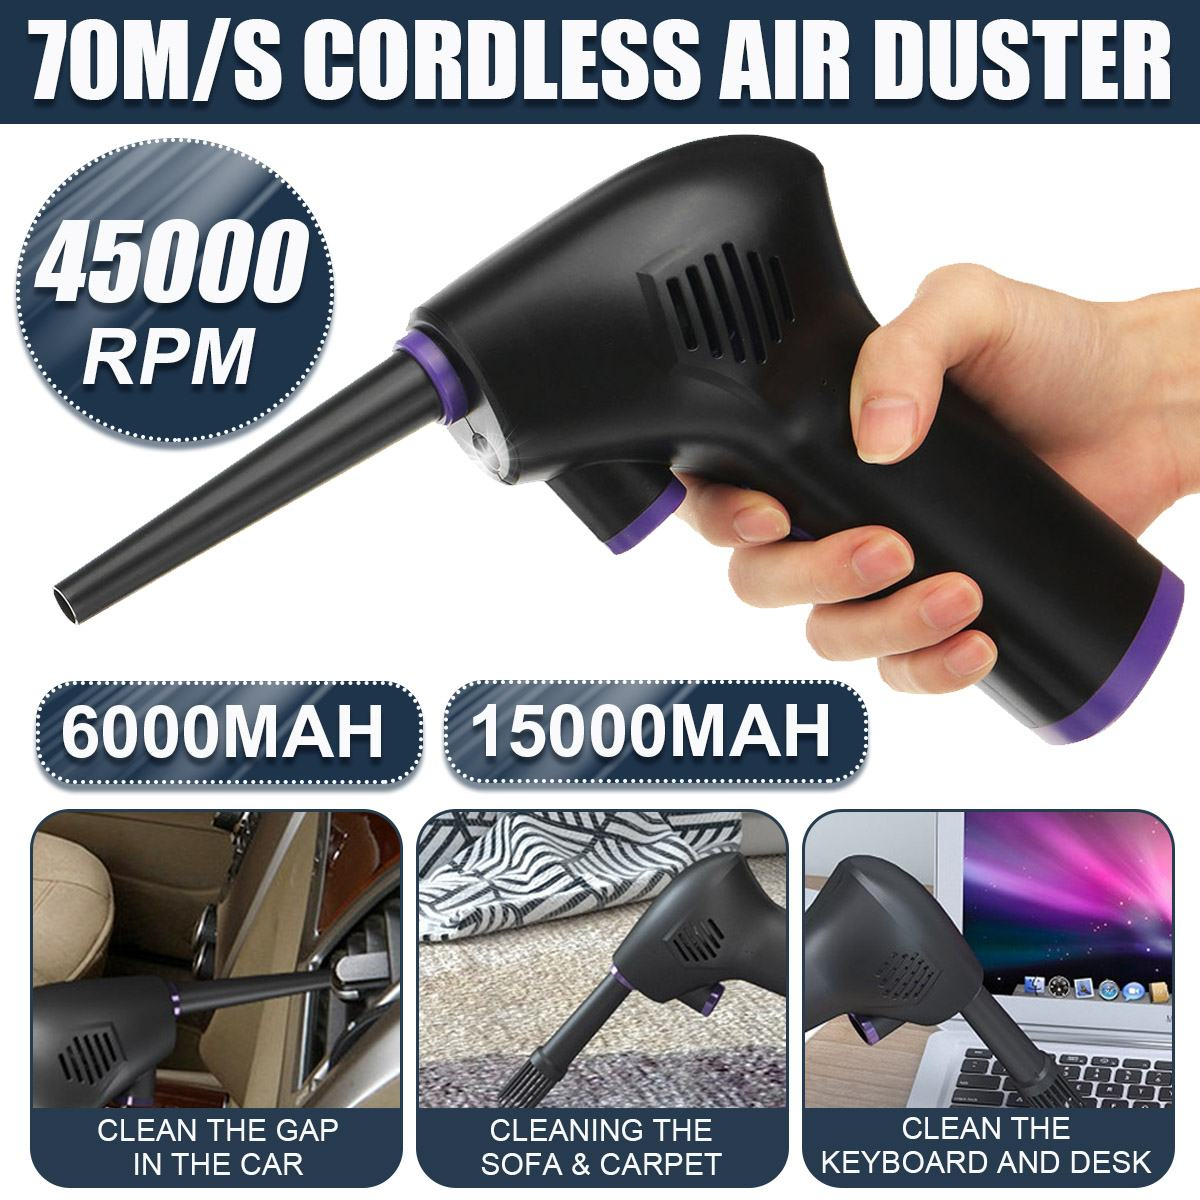 45000 RPM Cordless Air Duster Compressed Air Blower Cleaning Tool For Computer Laptop Keyboard Electronics Cleaning For Camera